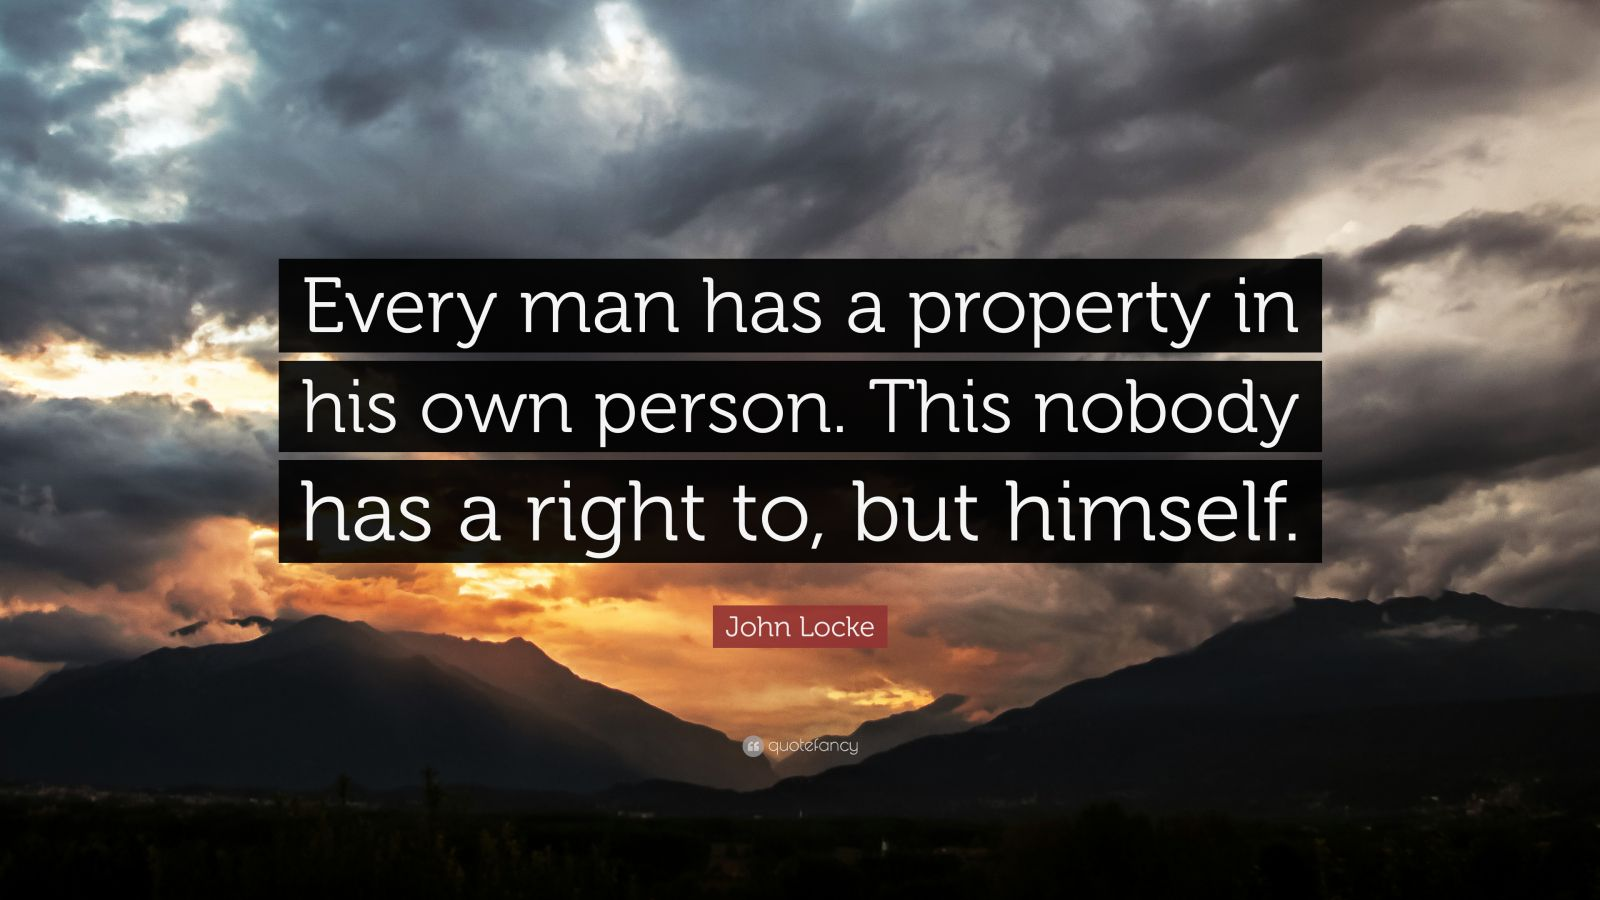 """John Locke Quote: """"Every man has a property in his own person. This nobody has a right to, but himself."""""""